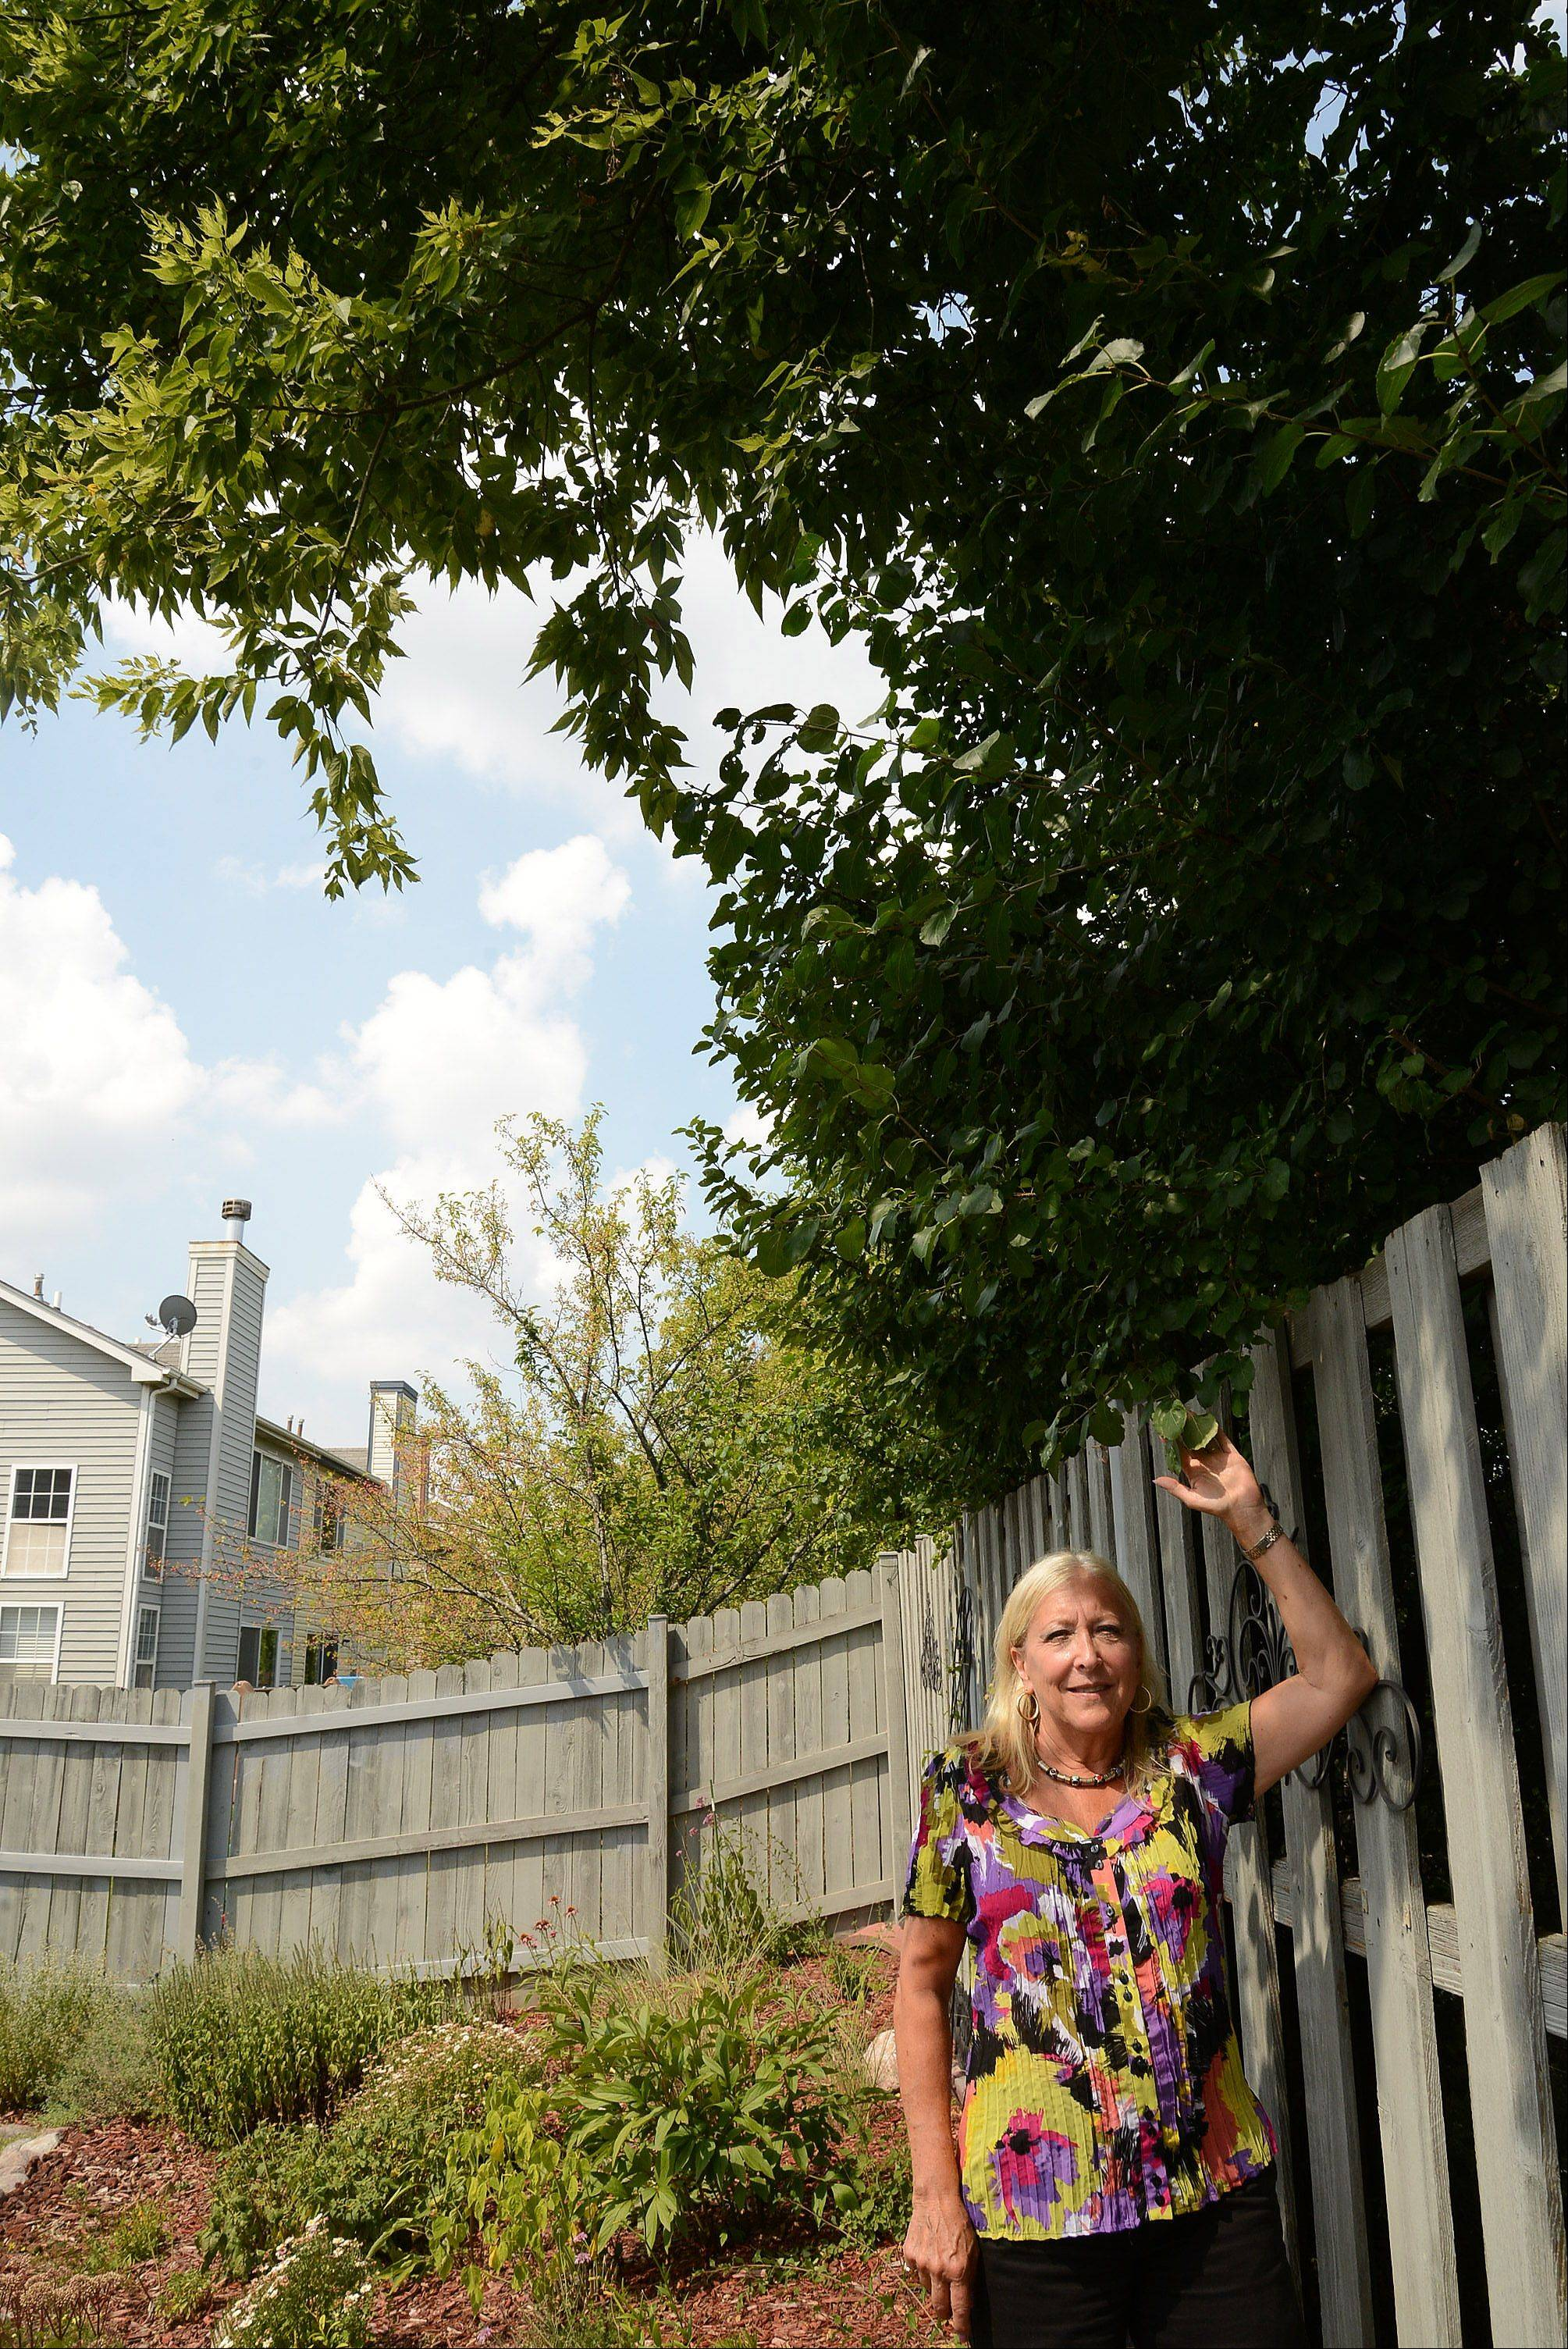 The weedy trees belong to the business next door, but Illinois law says the limbs hanging over the fence and stretching into Robin Sachs' Mundelein yard are legally her responsibility.